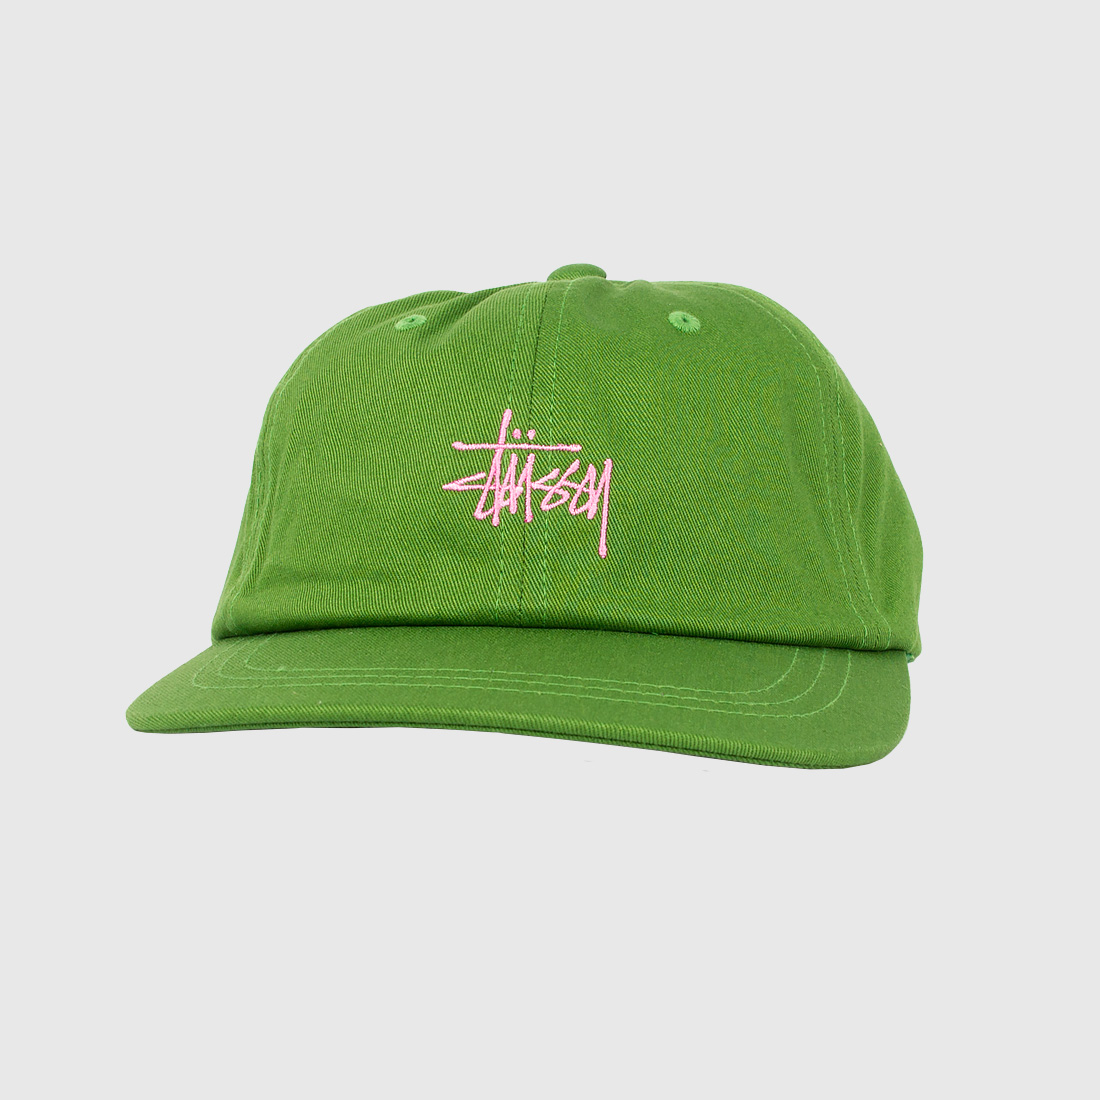 27600c637cc60 Кепка Stussy SP19 STOCK LOW PRO CAP Green купить в «Kapkan Shop ...